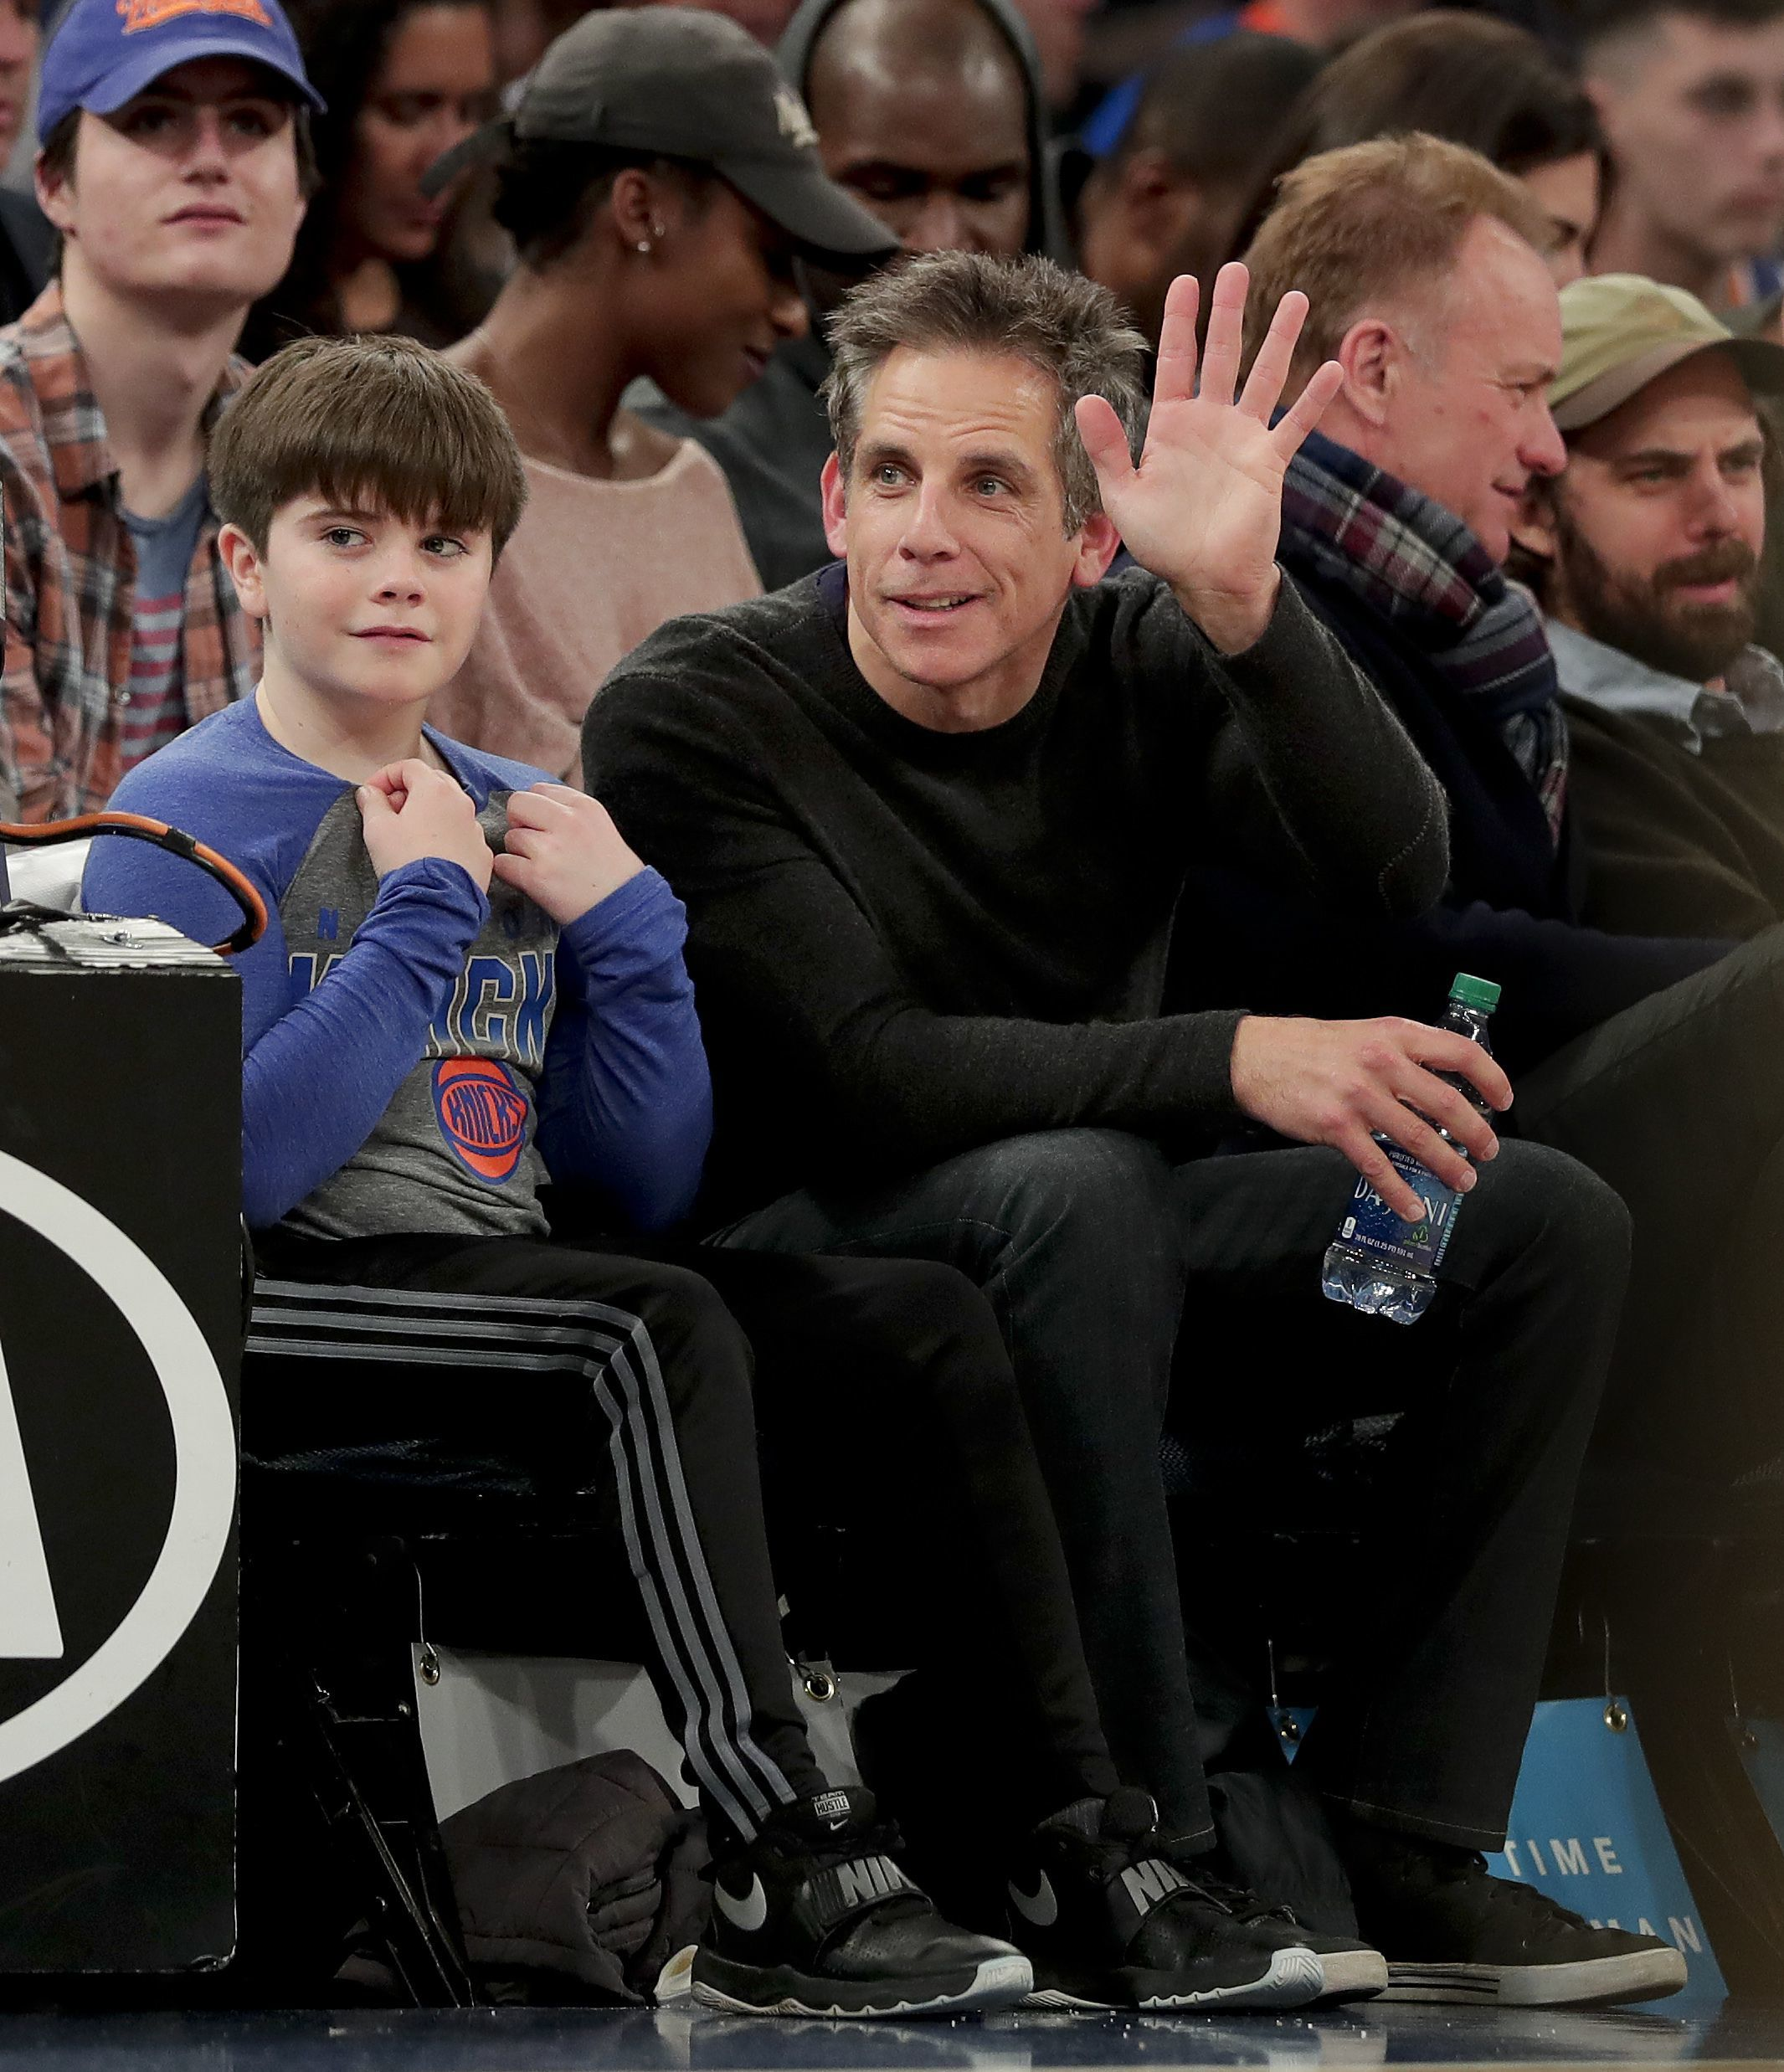 Ben Stiller hung with his son Quinlan while at a New York Knicks basketball game in New York City on Nov. 22, 2017.